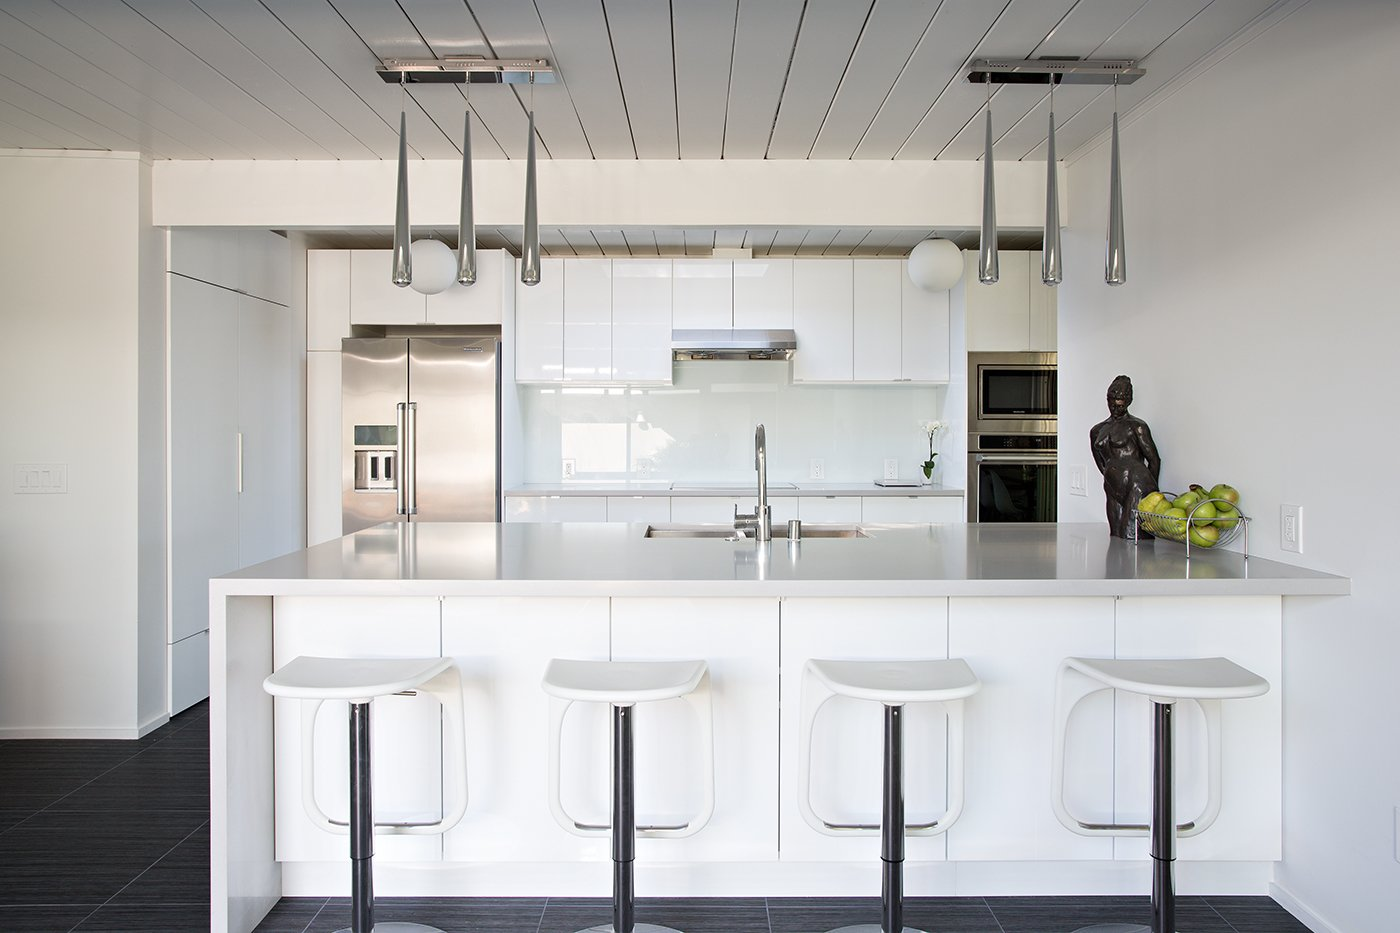 The kitchen remodel included creating more space and installing a single-plane island that served as the perfect spot for the family's children to do everything from eating to studying schoolwork. Photo by Mariko Reed. Tagged: Kitchen, White Cabinet, and Pendant Lighting.  Modern Eichler Renovations by Allie Weiss from Eichler Remodel in Burlingame, California